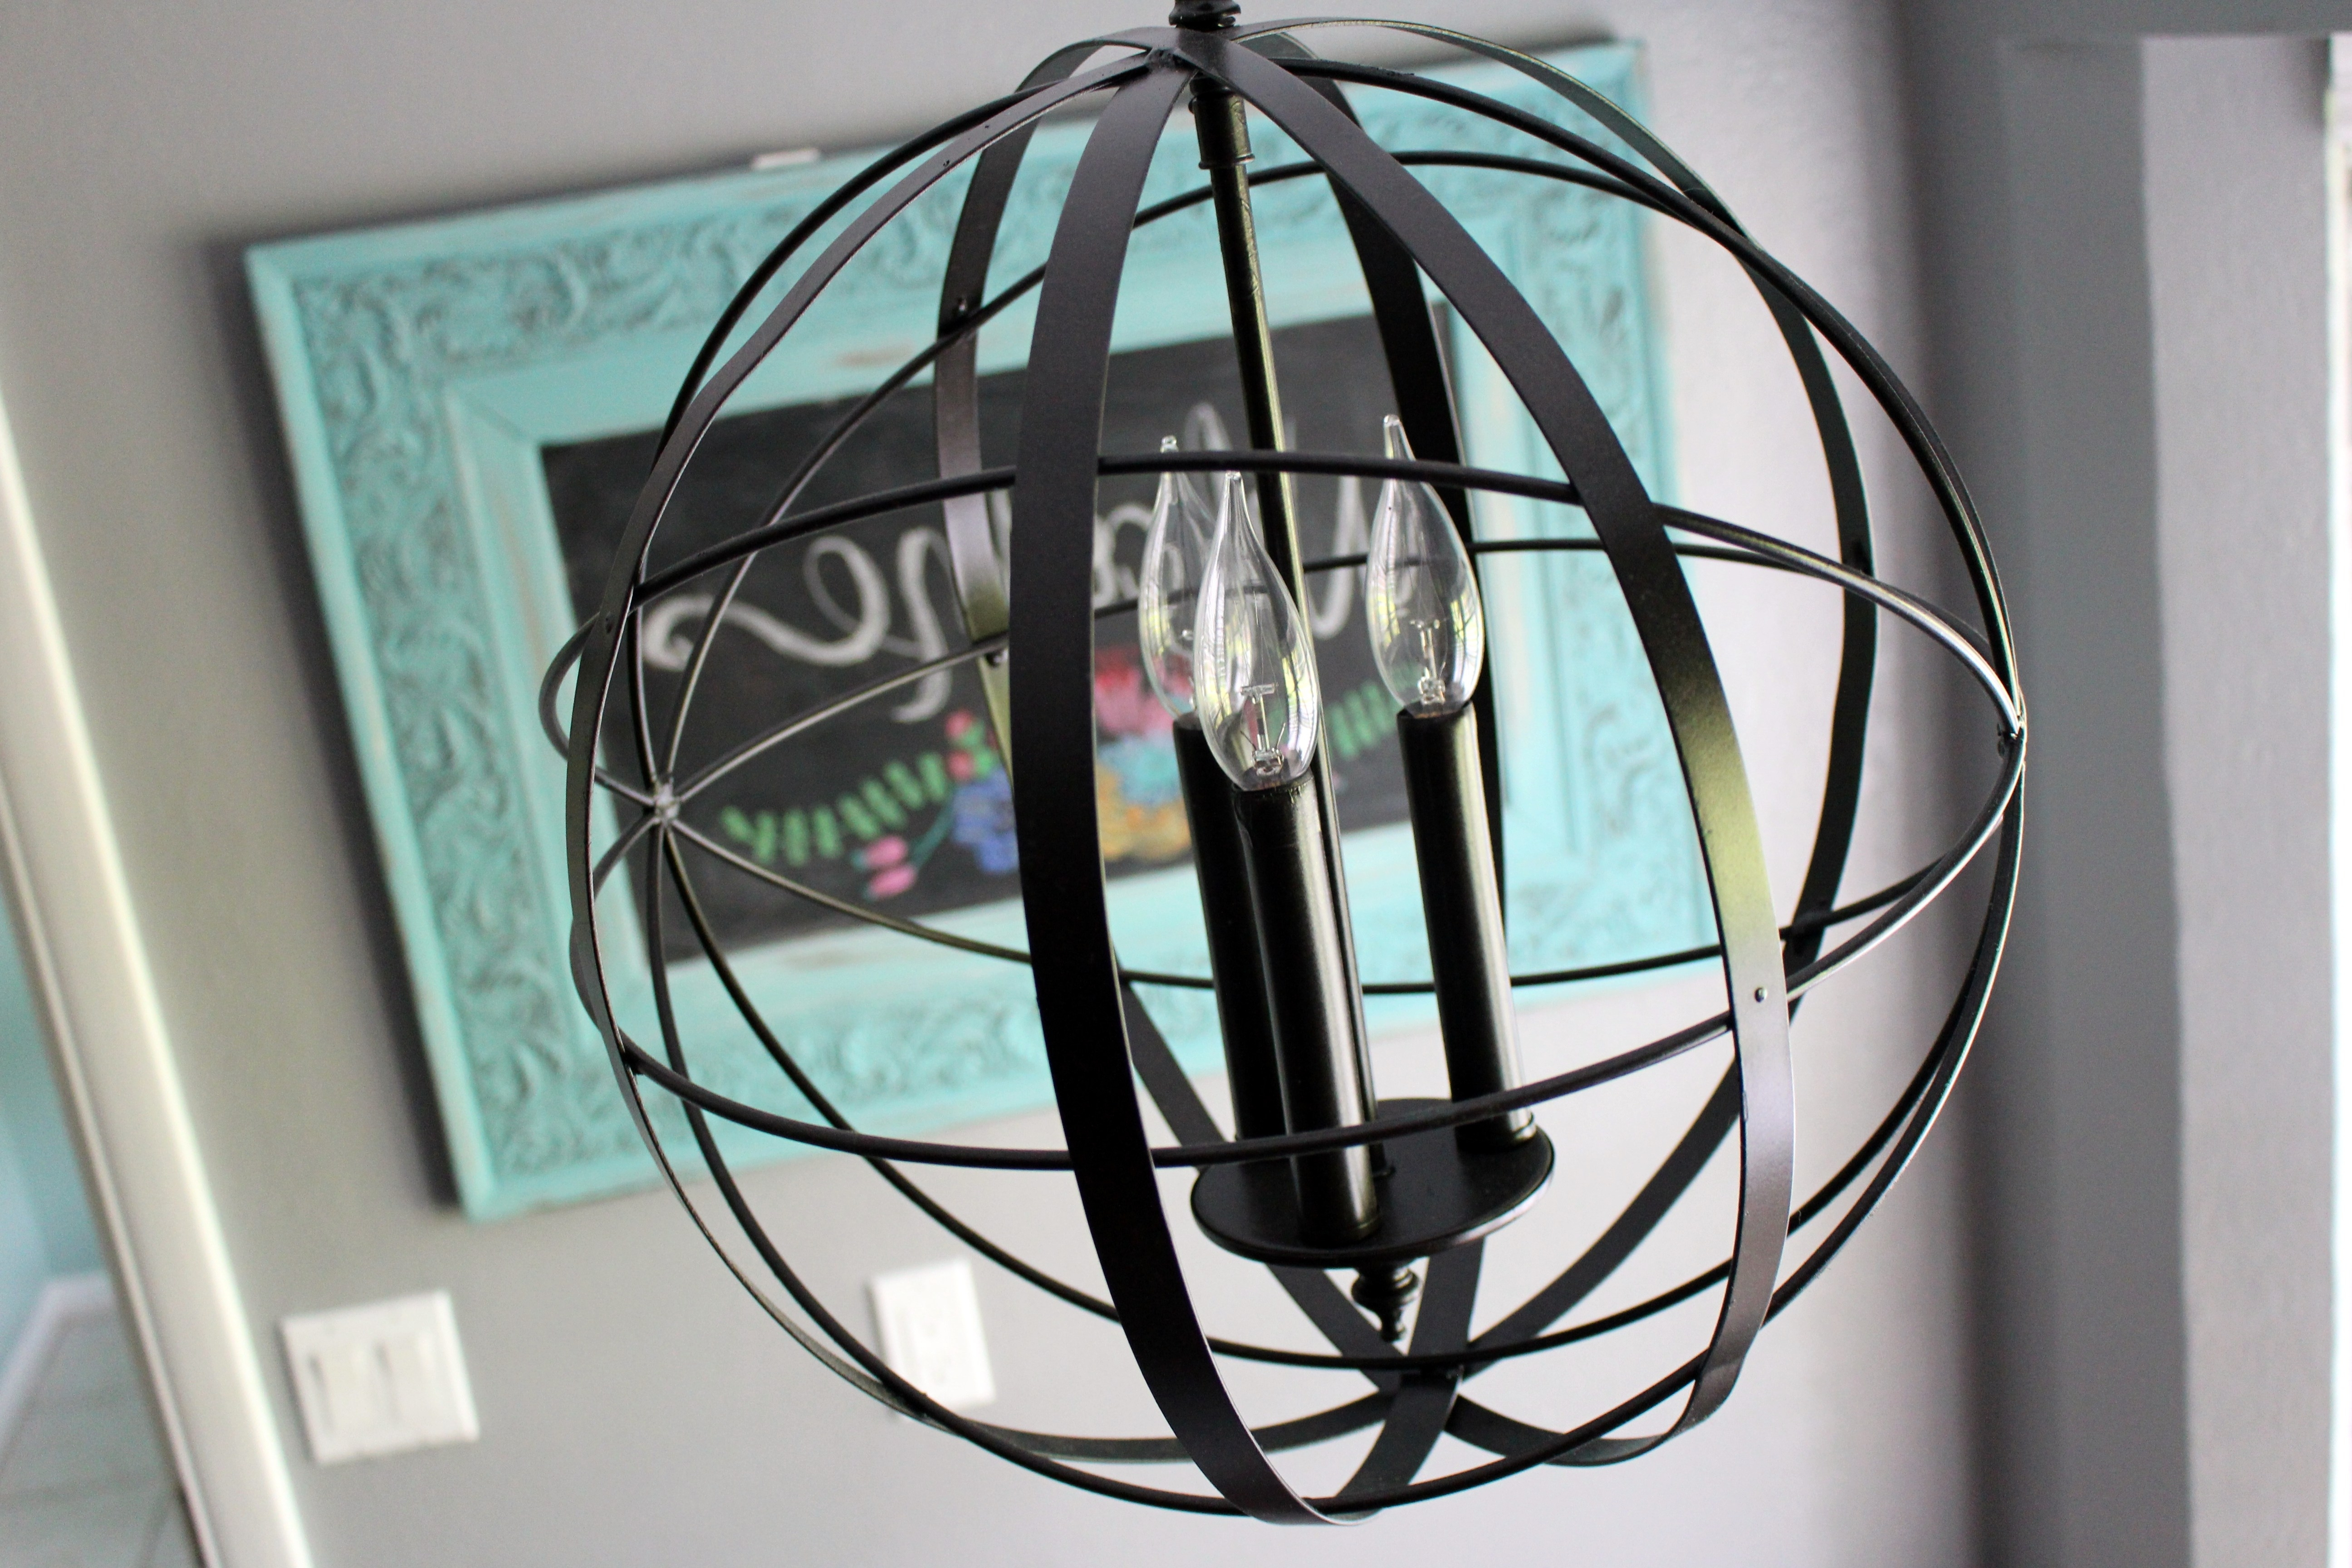 Home Project // Orb Chandelier For Breakfast Nook – Within The Grove Regarding Most Recently Released Turquoise Orb Chandeliers (View 4 of 15)